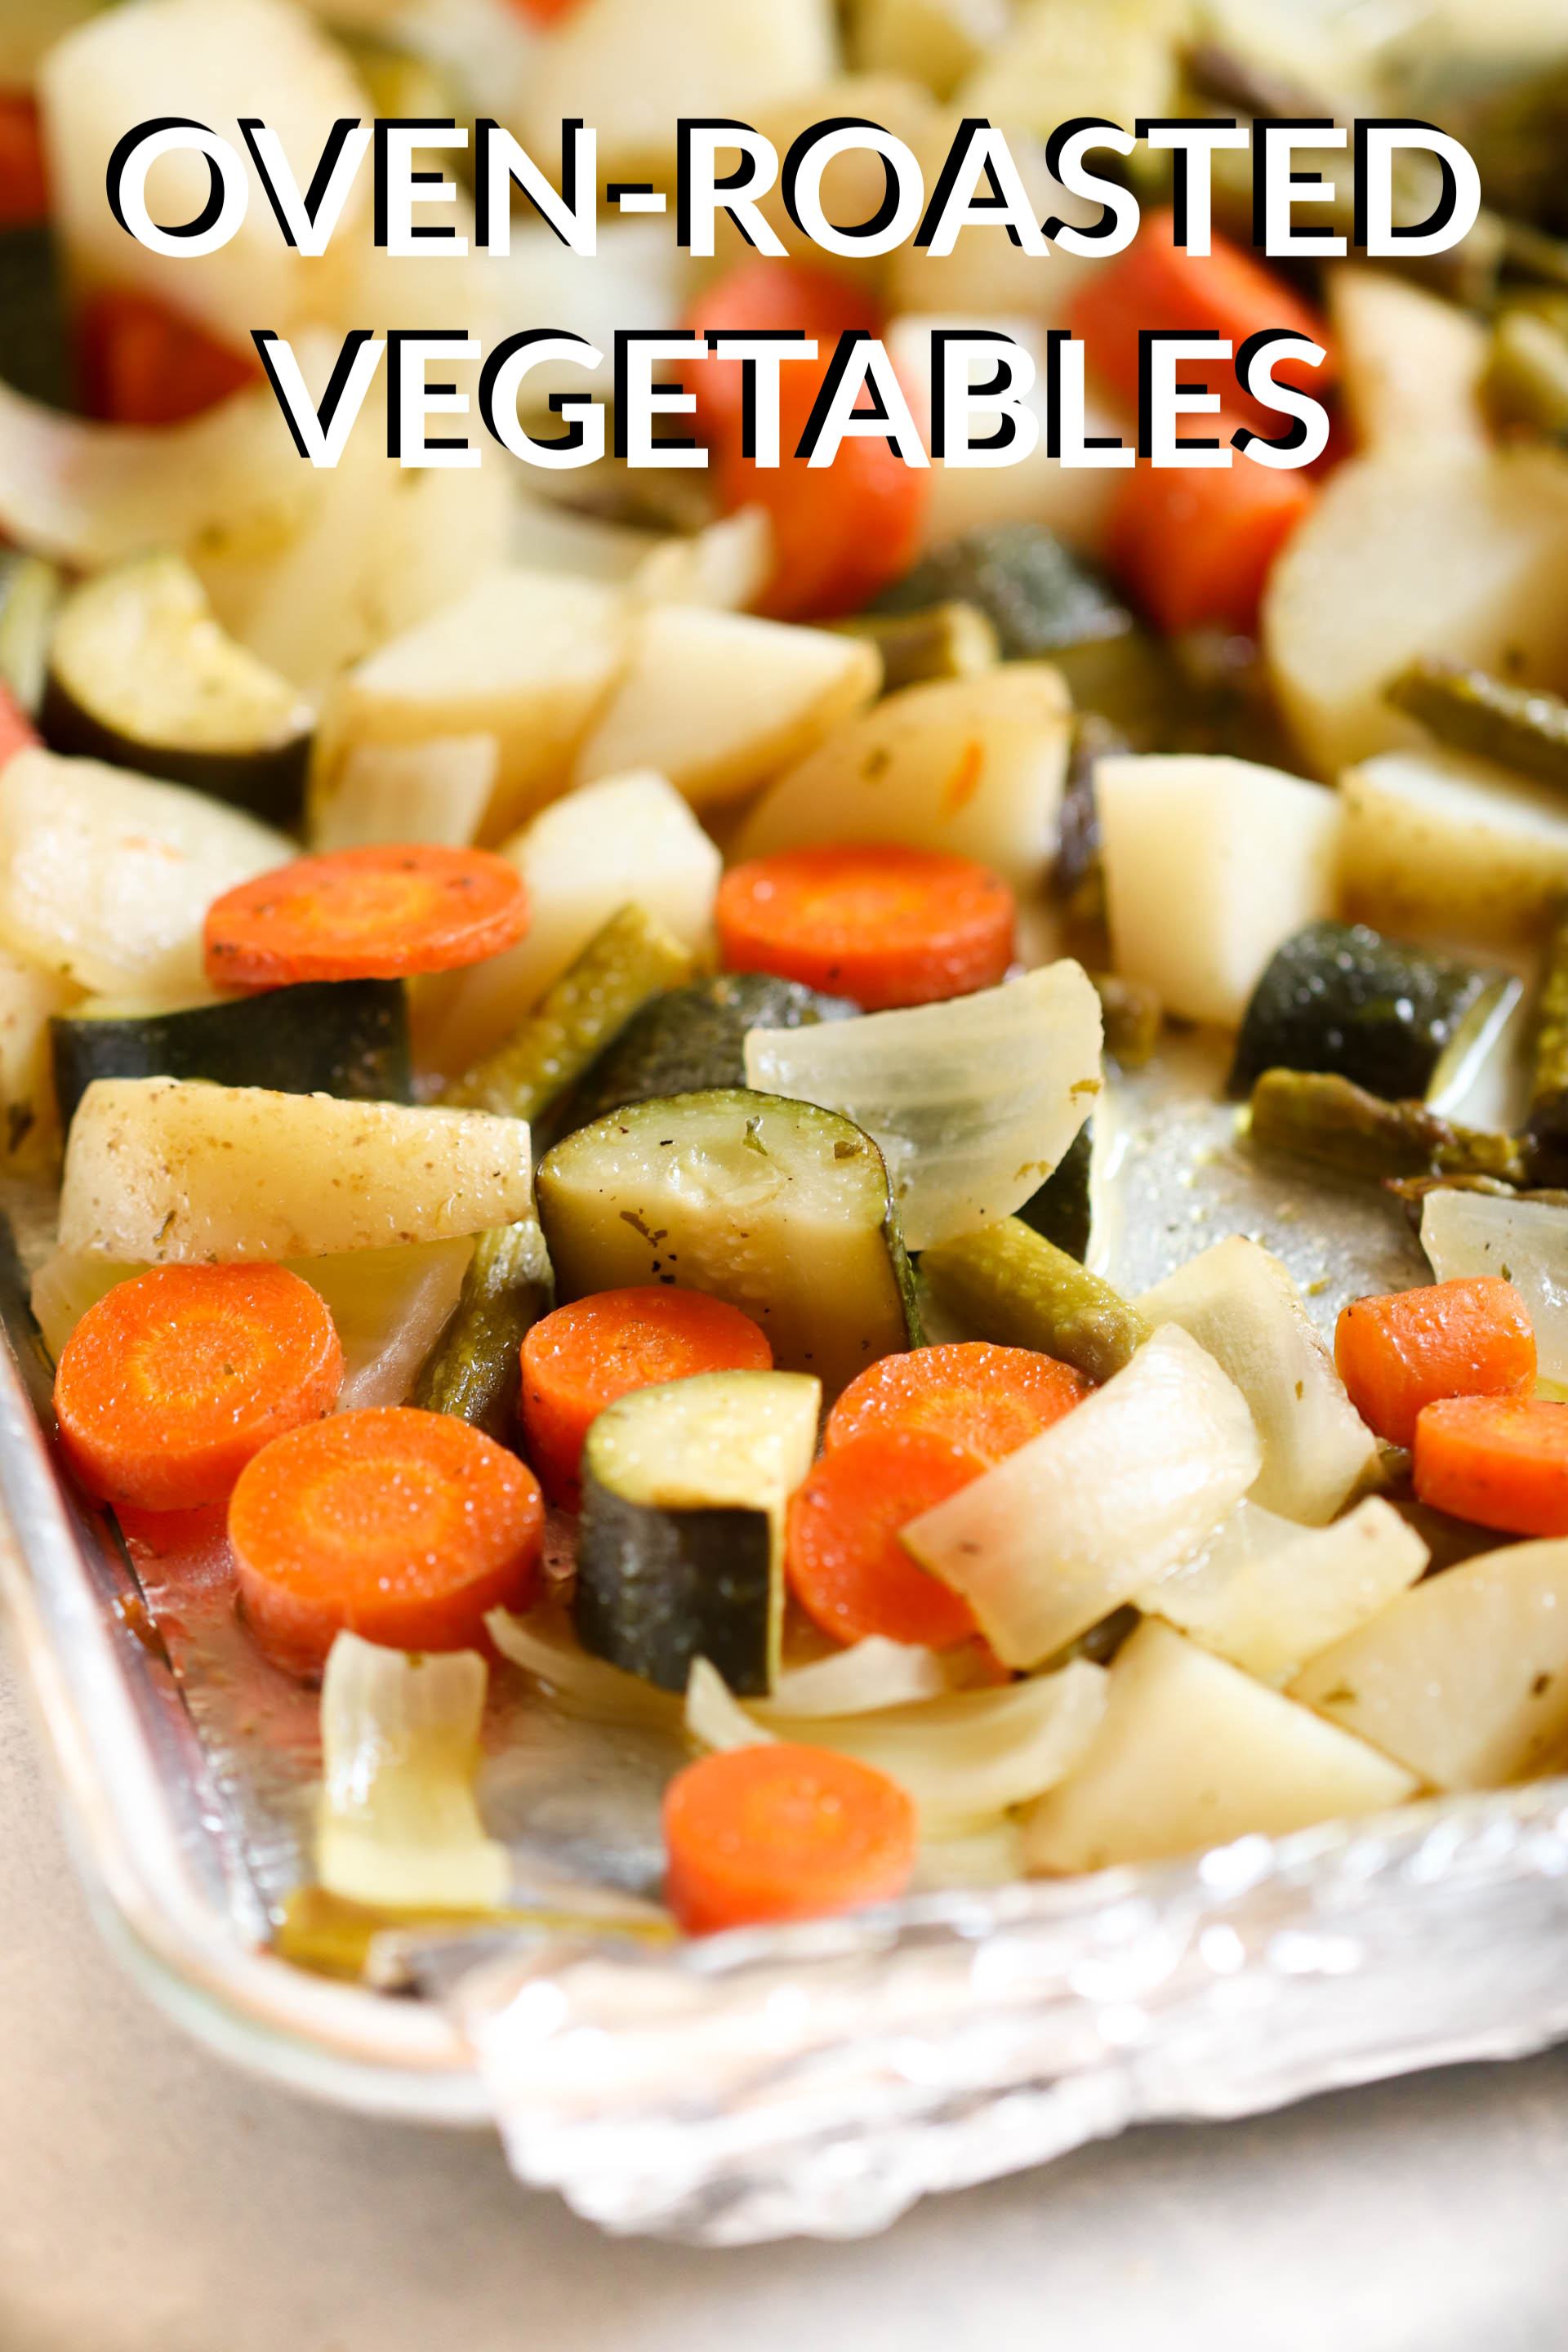 Oven Roasted Vegetables from SixSistersStuff.com